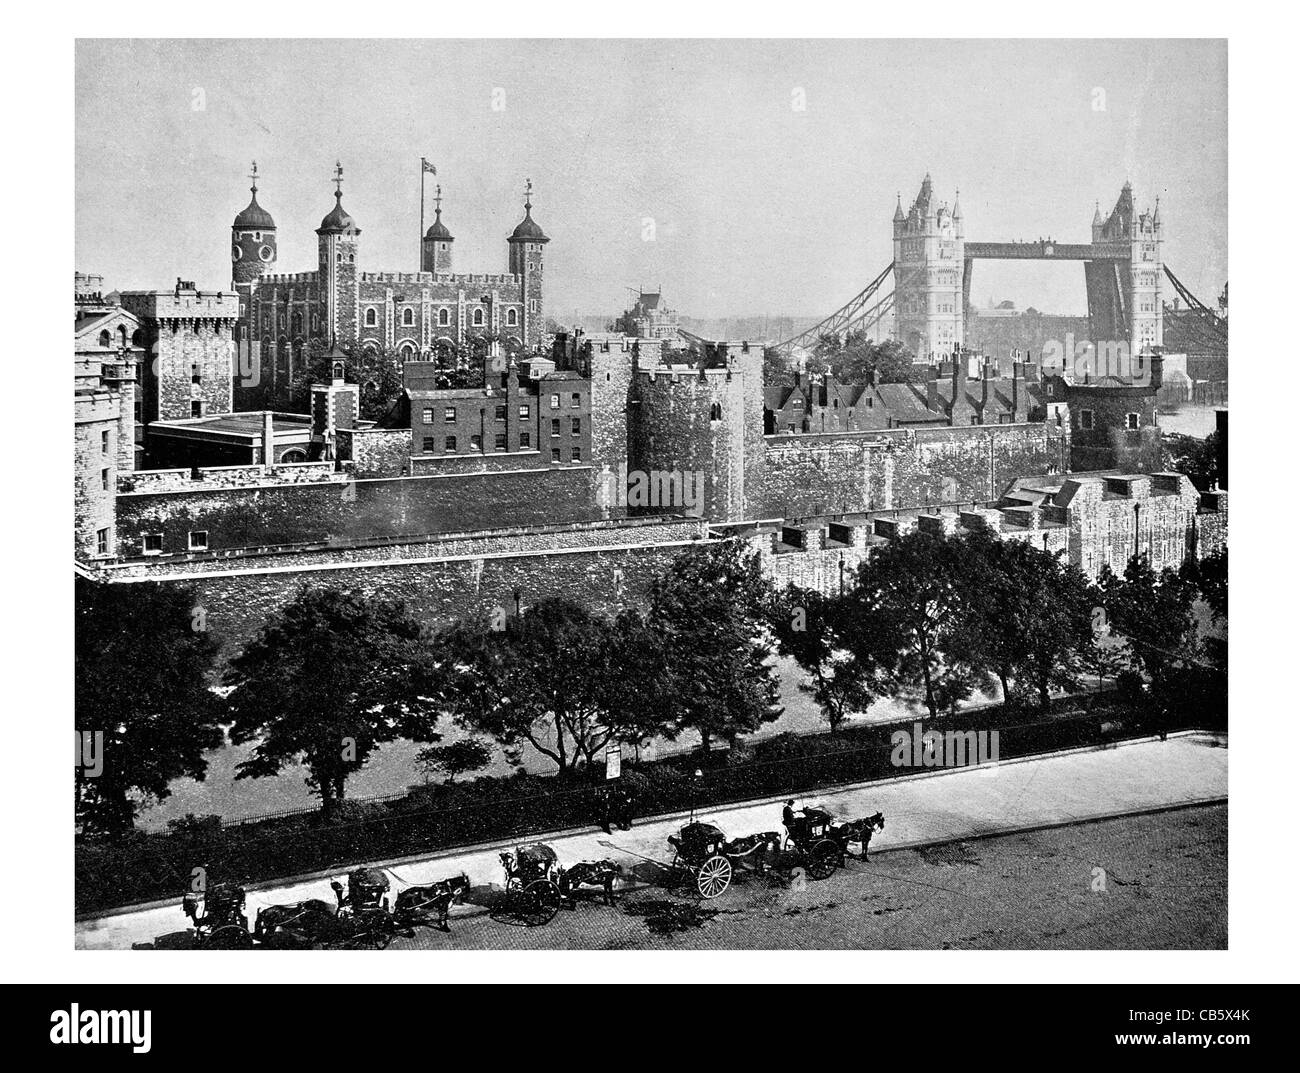 Tower of London Her Majesty's Royal Palace Fortress historic castle River Thames England Bridge turrets - Stock Image